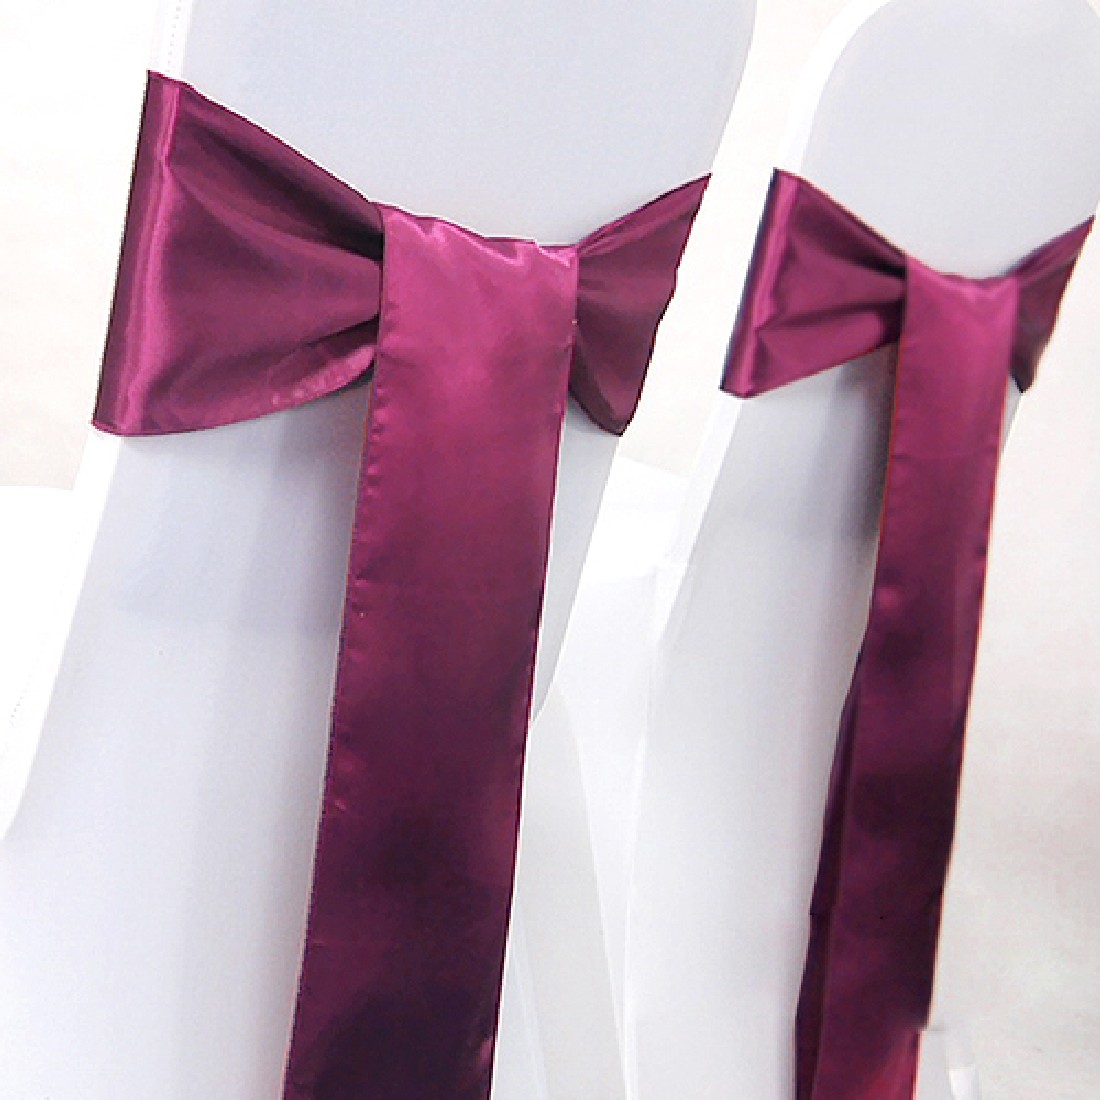 Chair Ribbon Decor Chair Decorations For Weddings Various